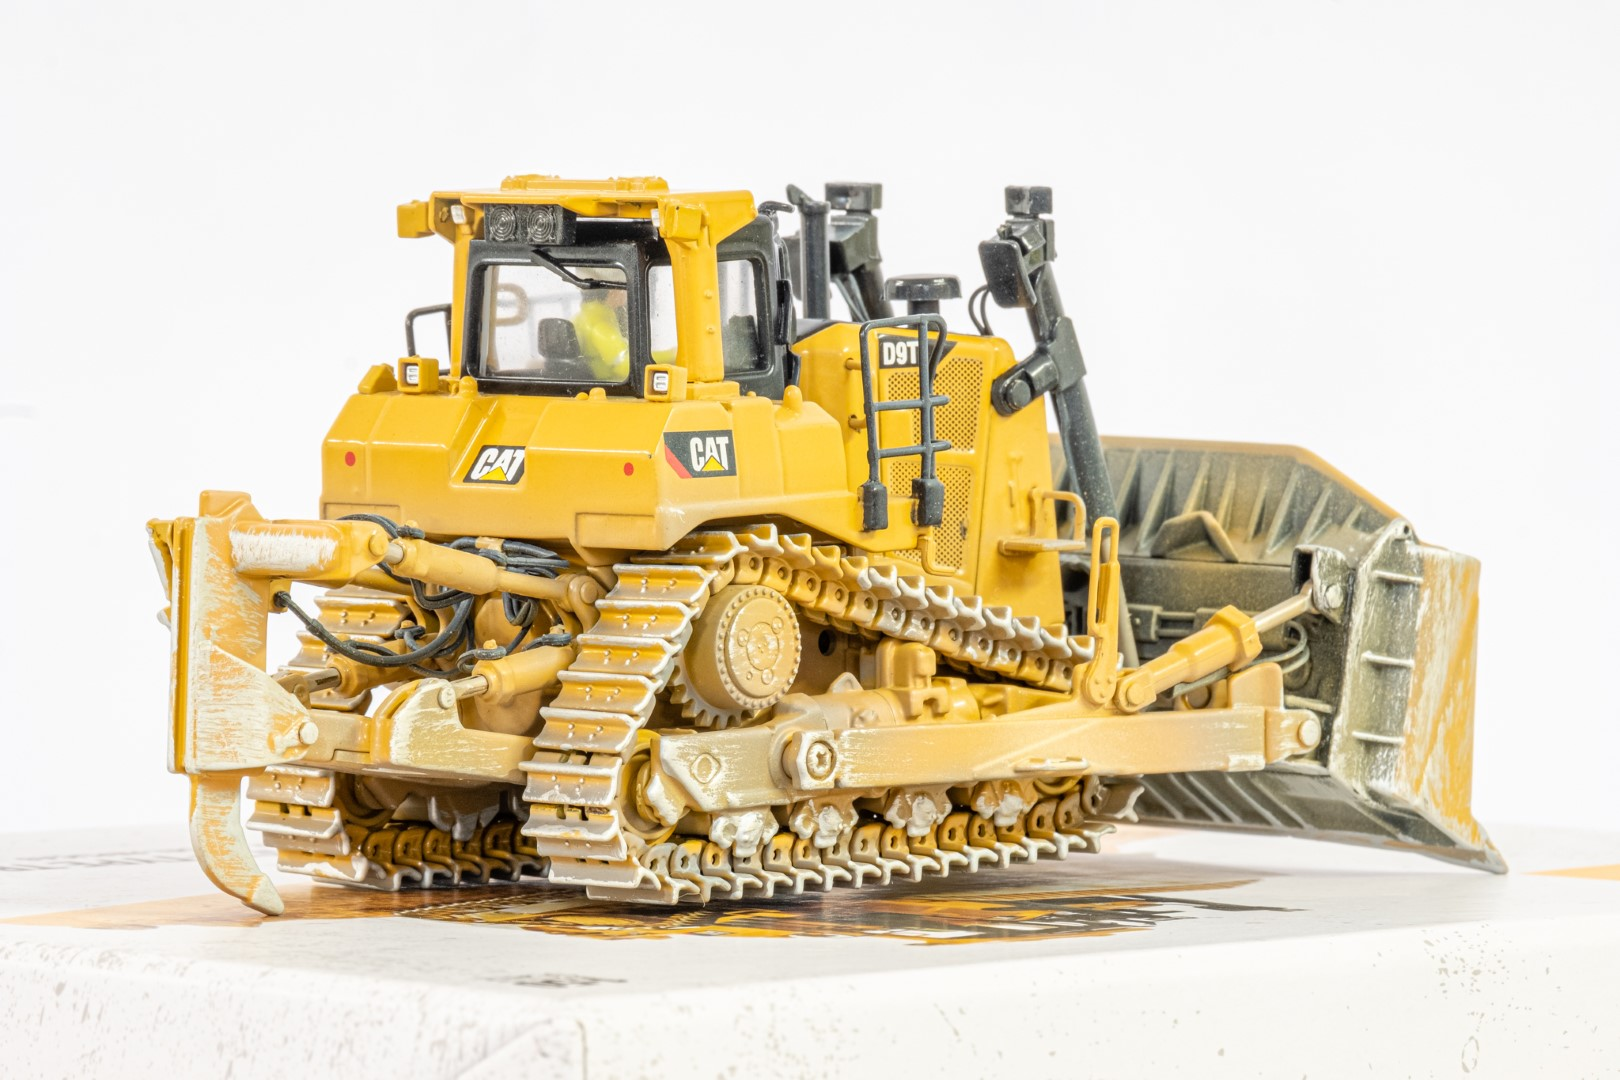 Diecast Masters CAT D9T Weathered Track Type Tractor - Mint condition - Image 4 of 4